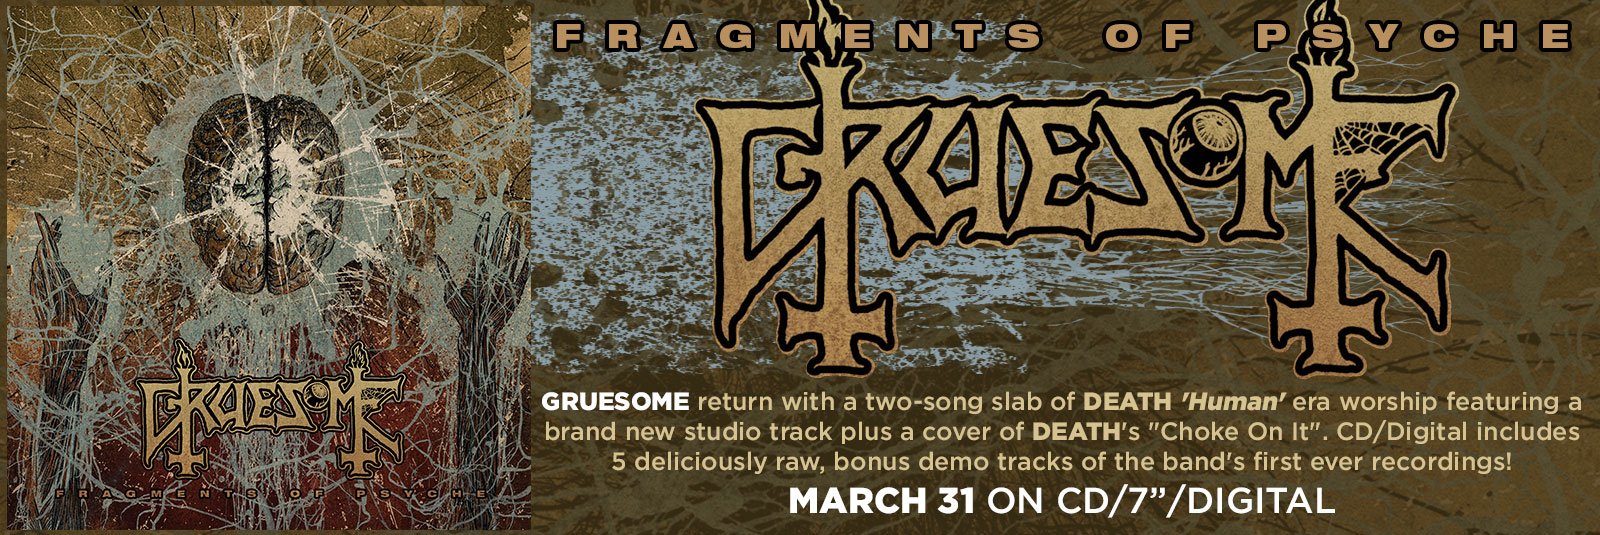 gruesome-fragments-of-psyche